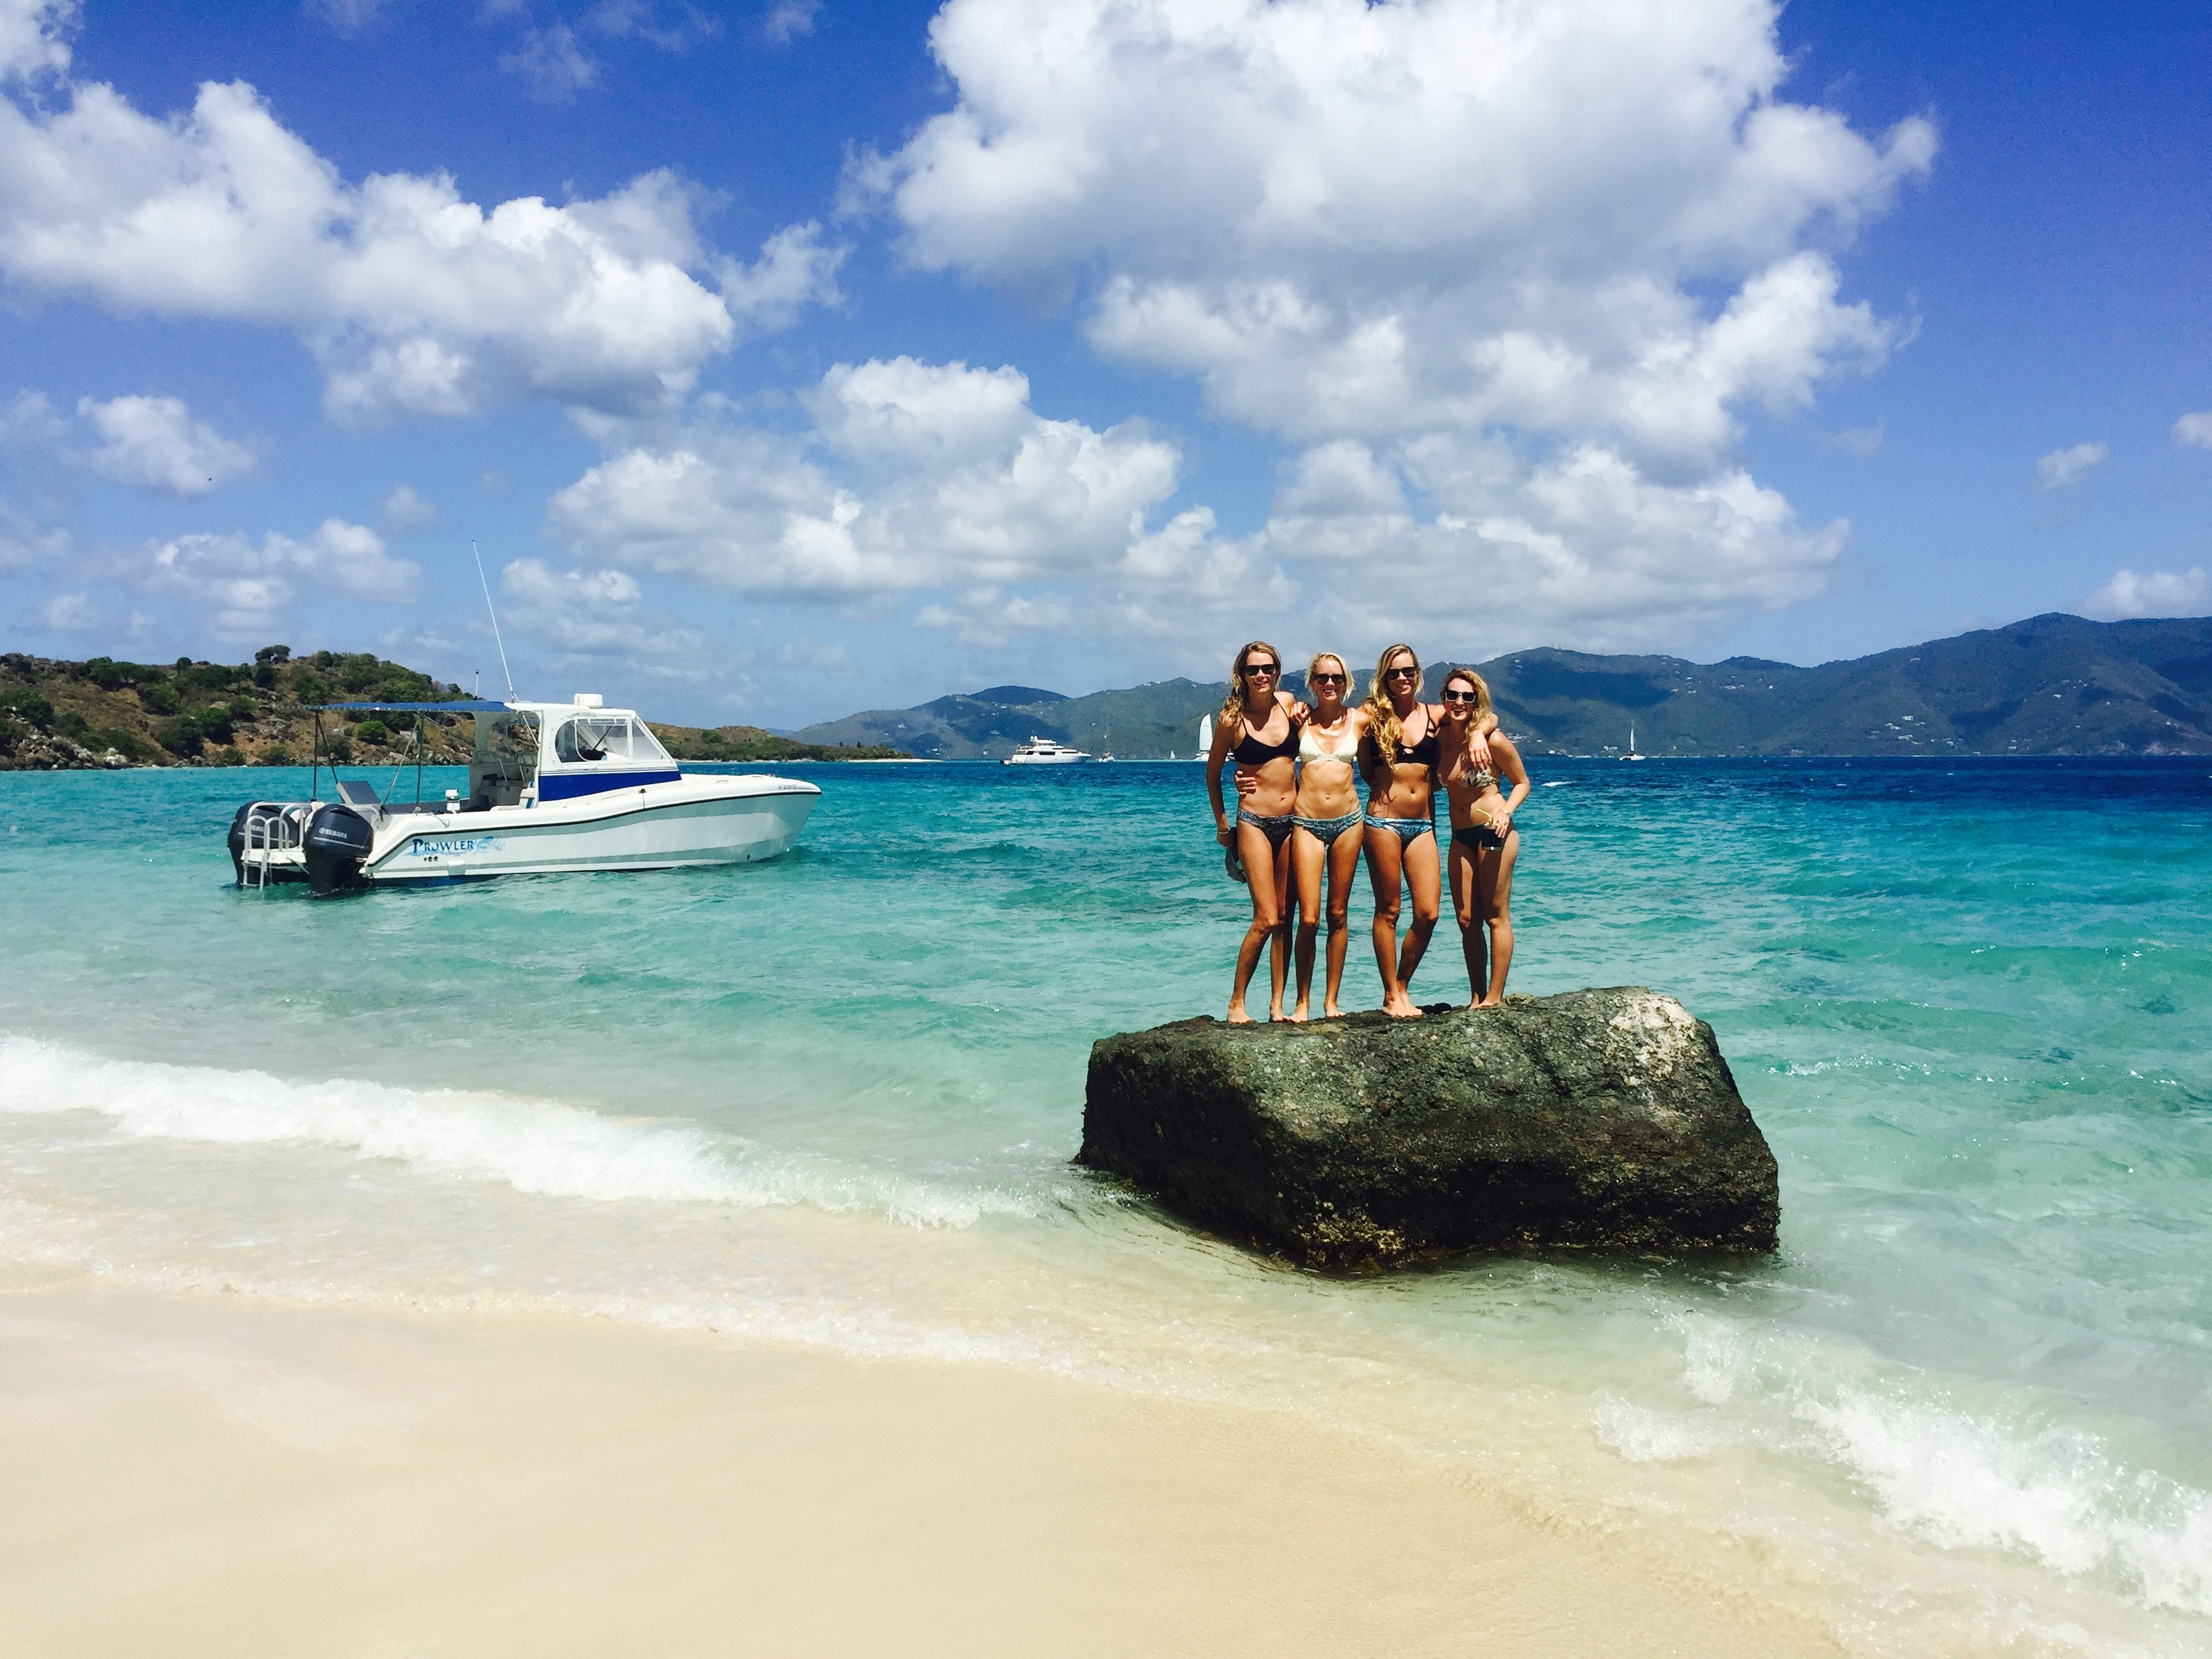 3 Reasons to Book a Private Boat while on Vacation in St Thomas